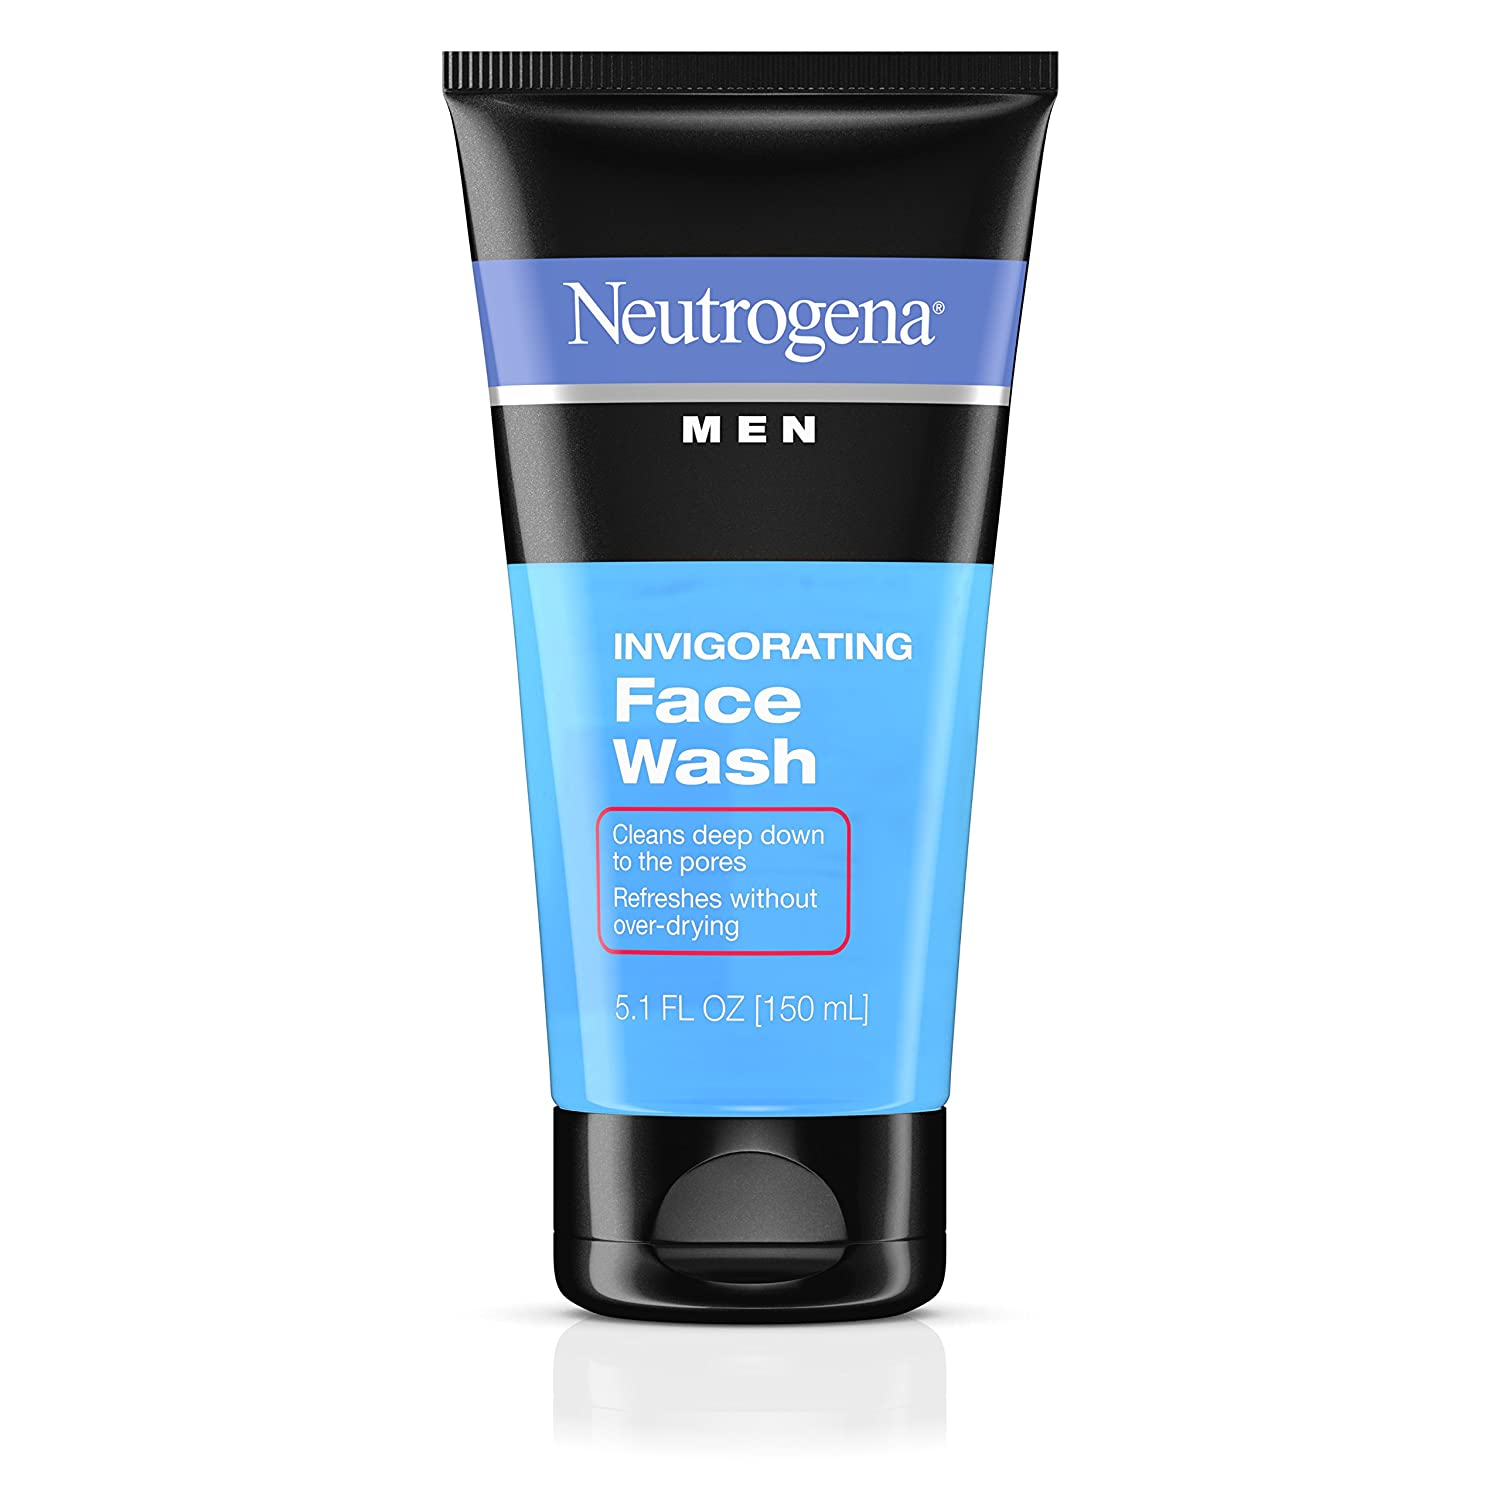 Neutrogena Invigorating Face Wash for Men, 5.1 Ounce 381370030119